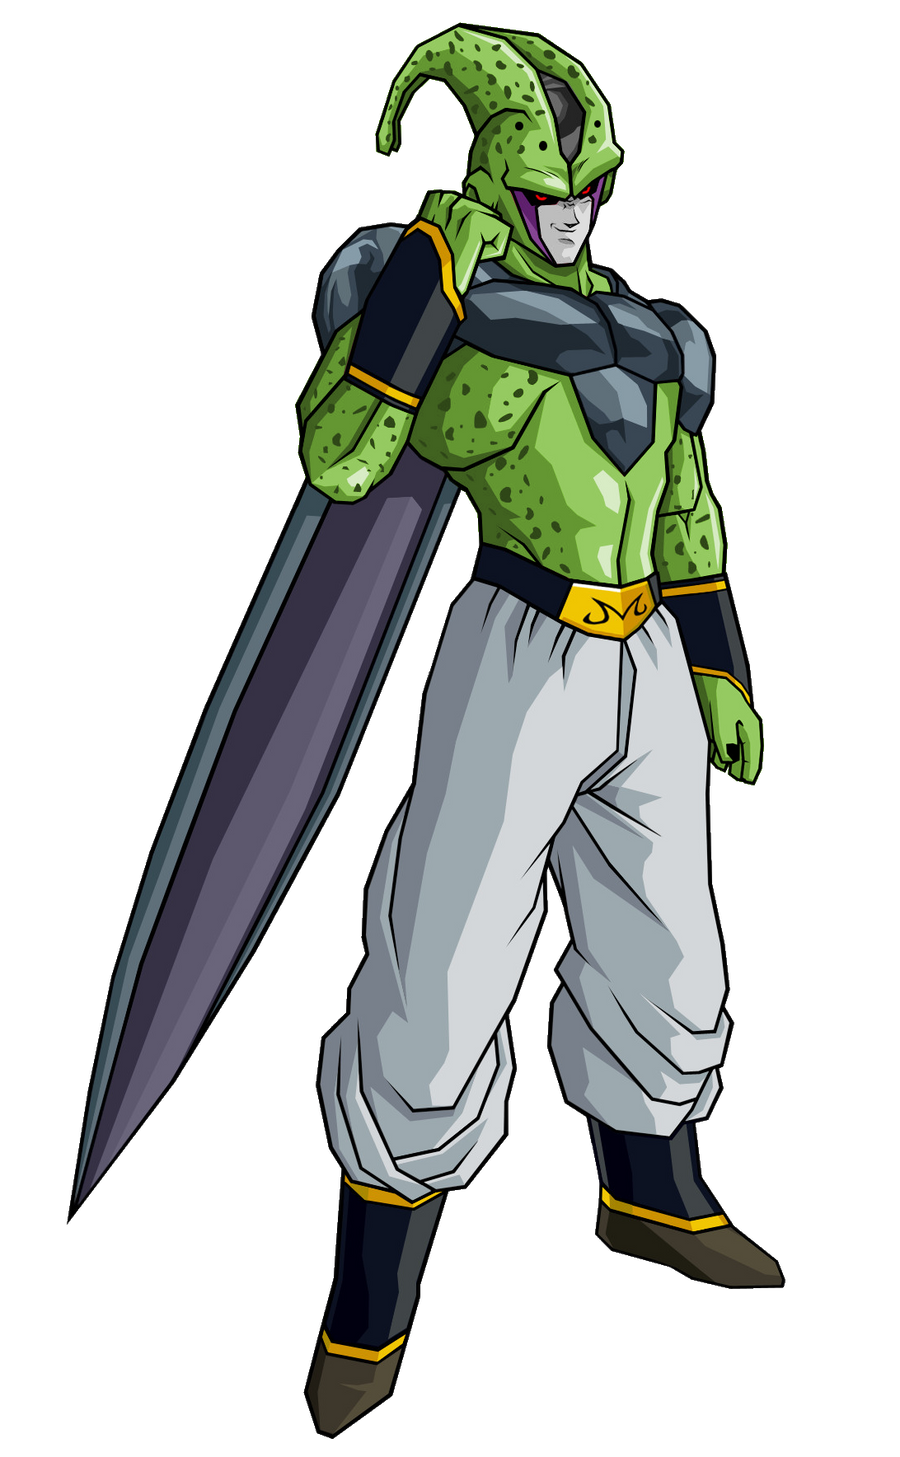 Majin Buu Cell abs. by RobertoVile on DeviantArt